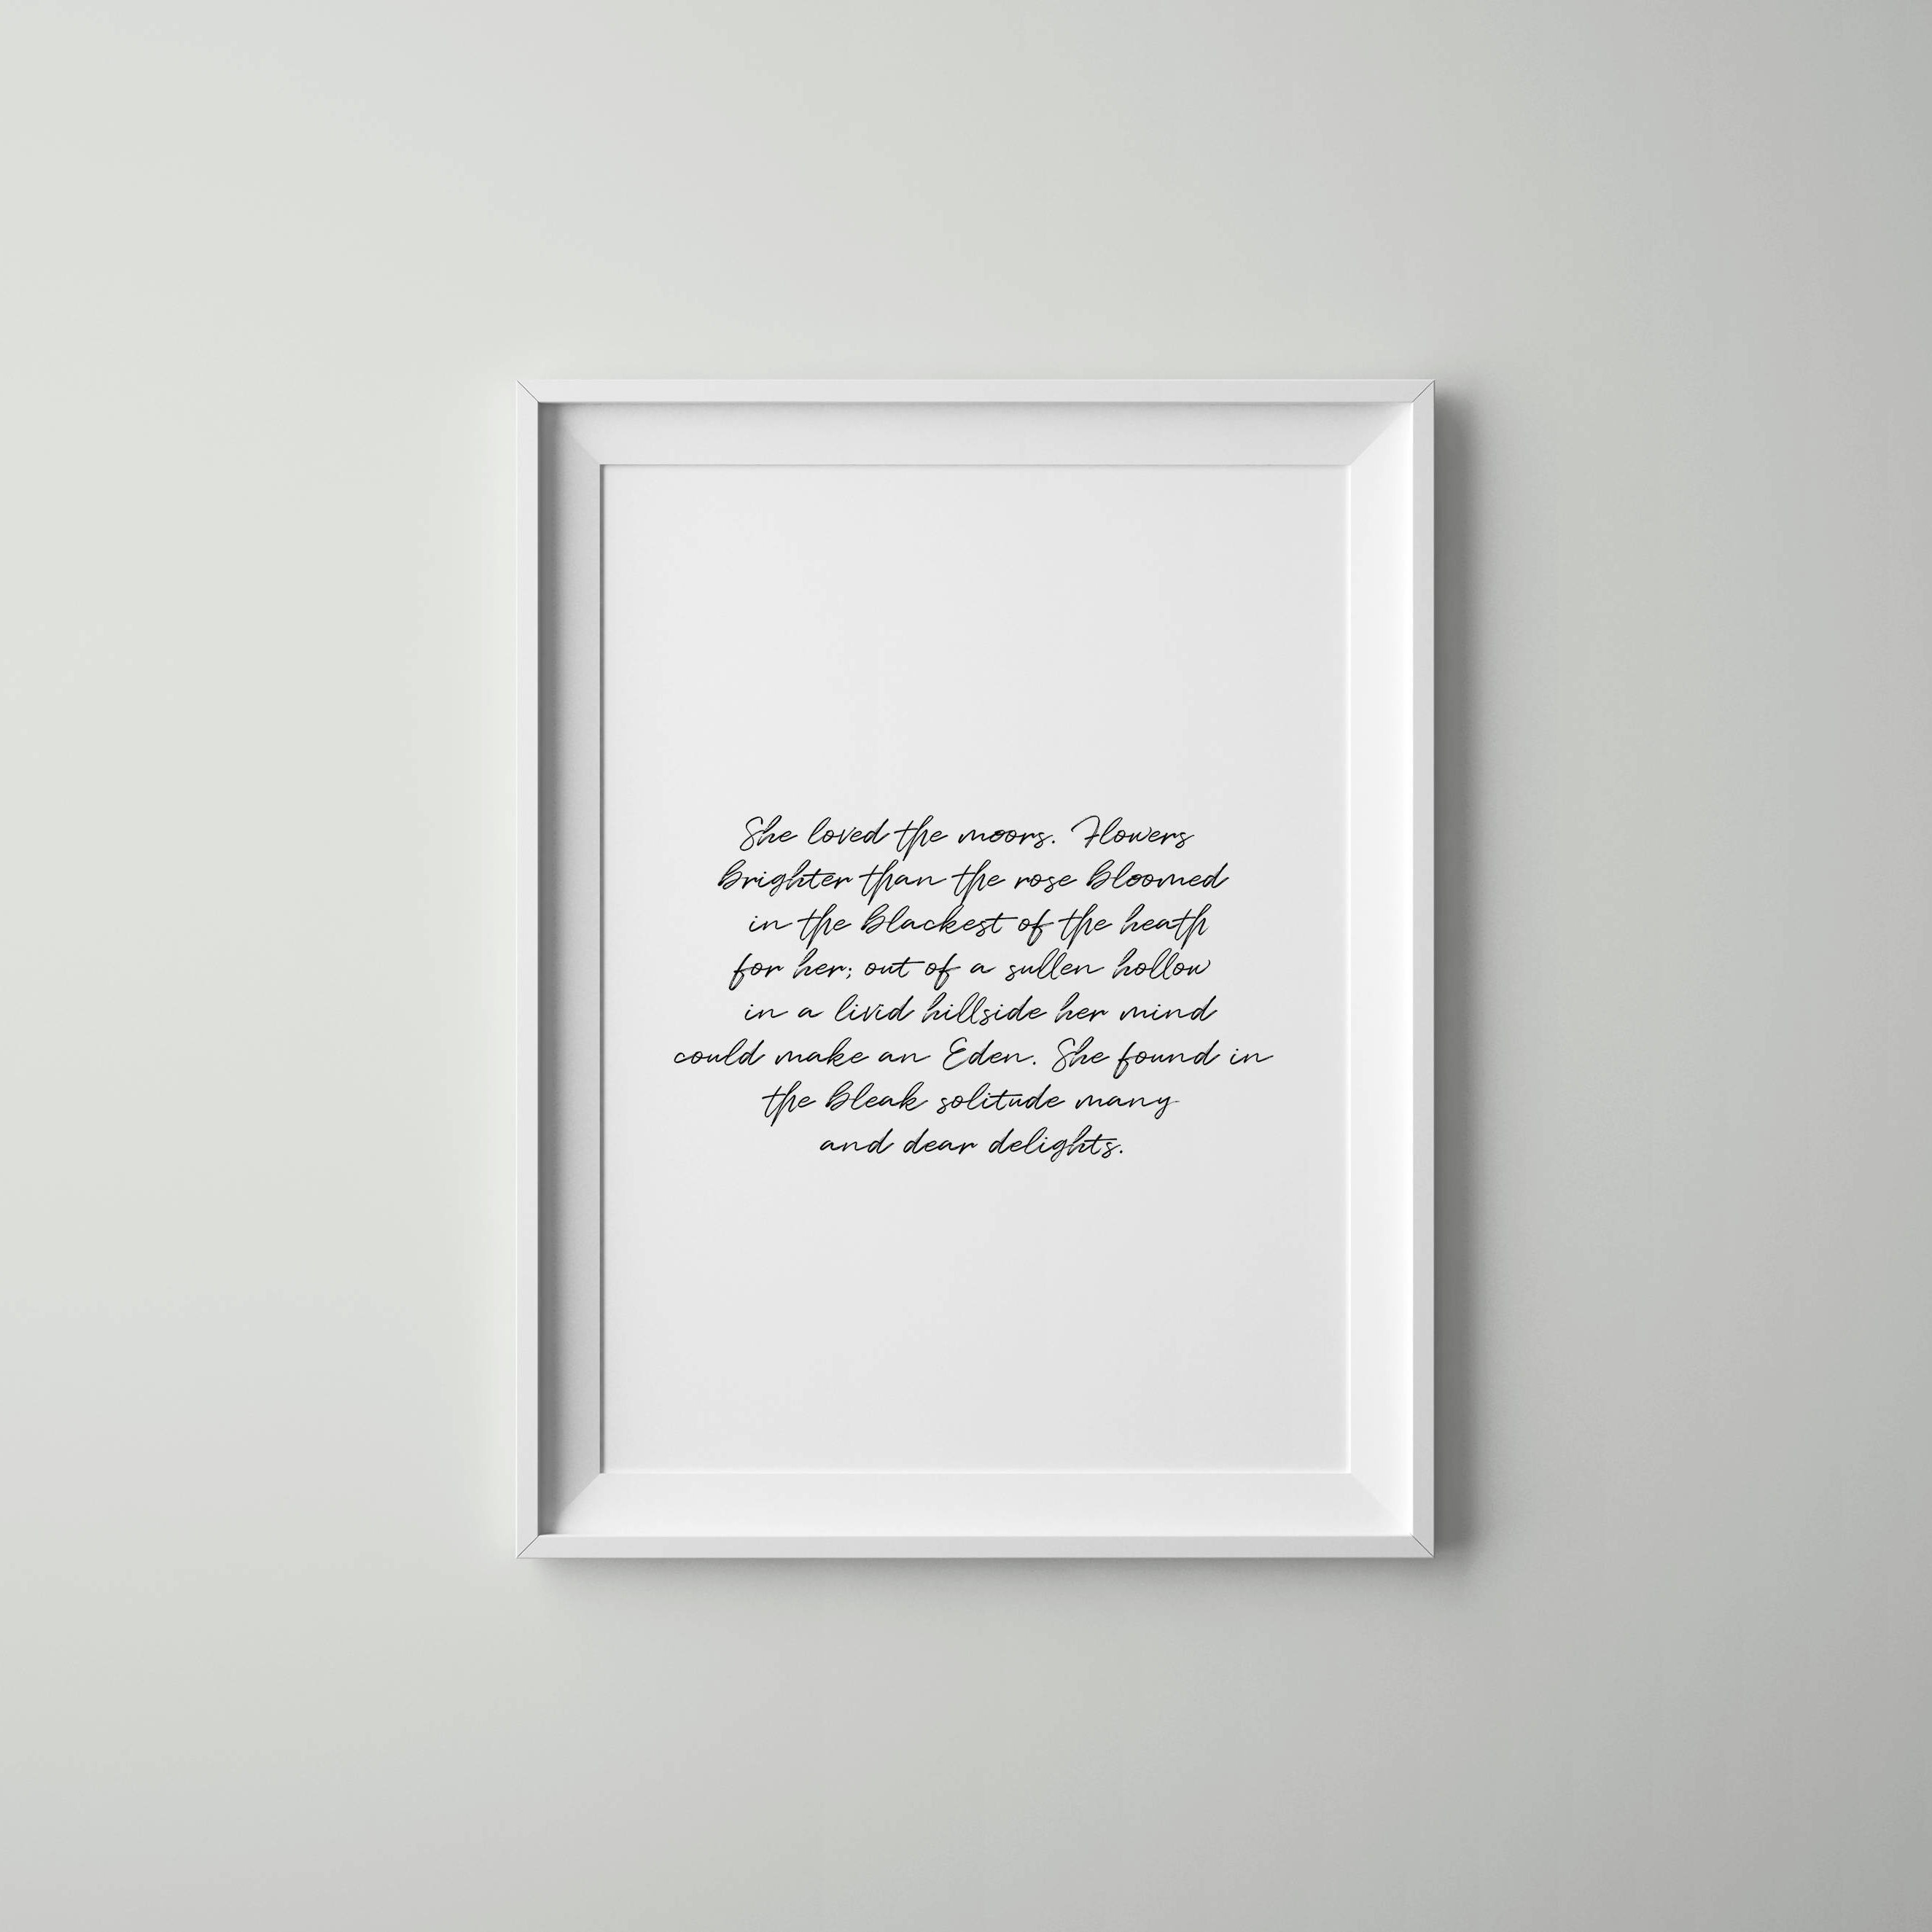 Art Quotes Tumblr She Loved Wall Art Quote Scandinavian Decor Tumblr Room